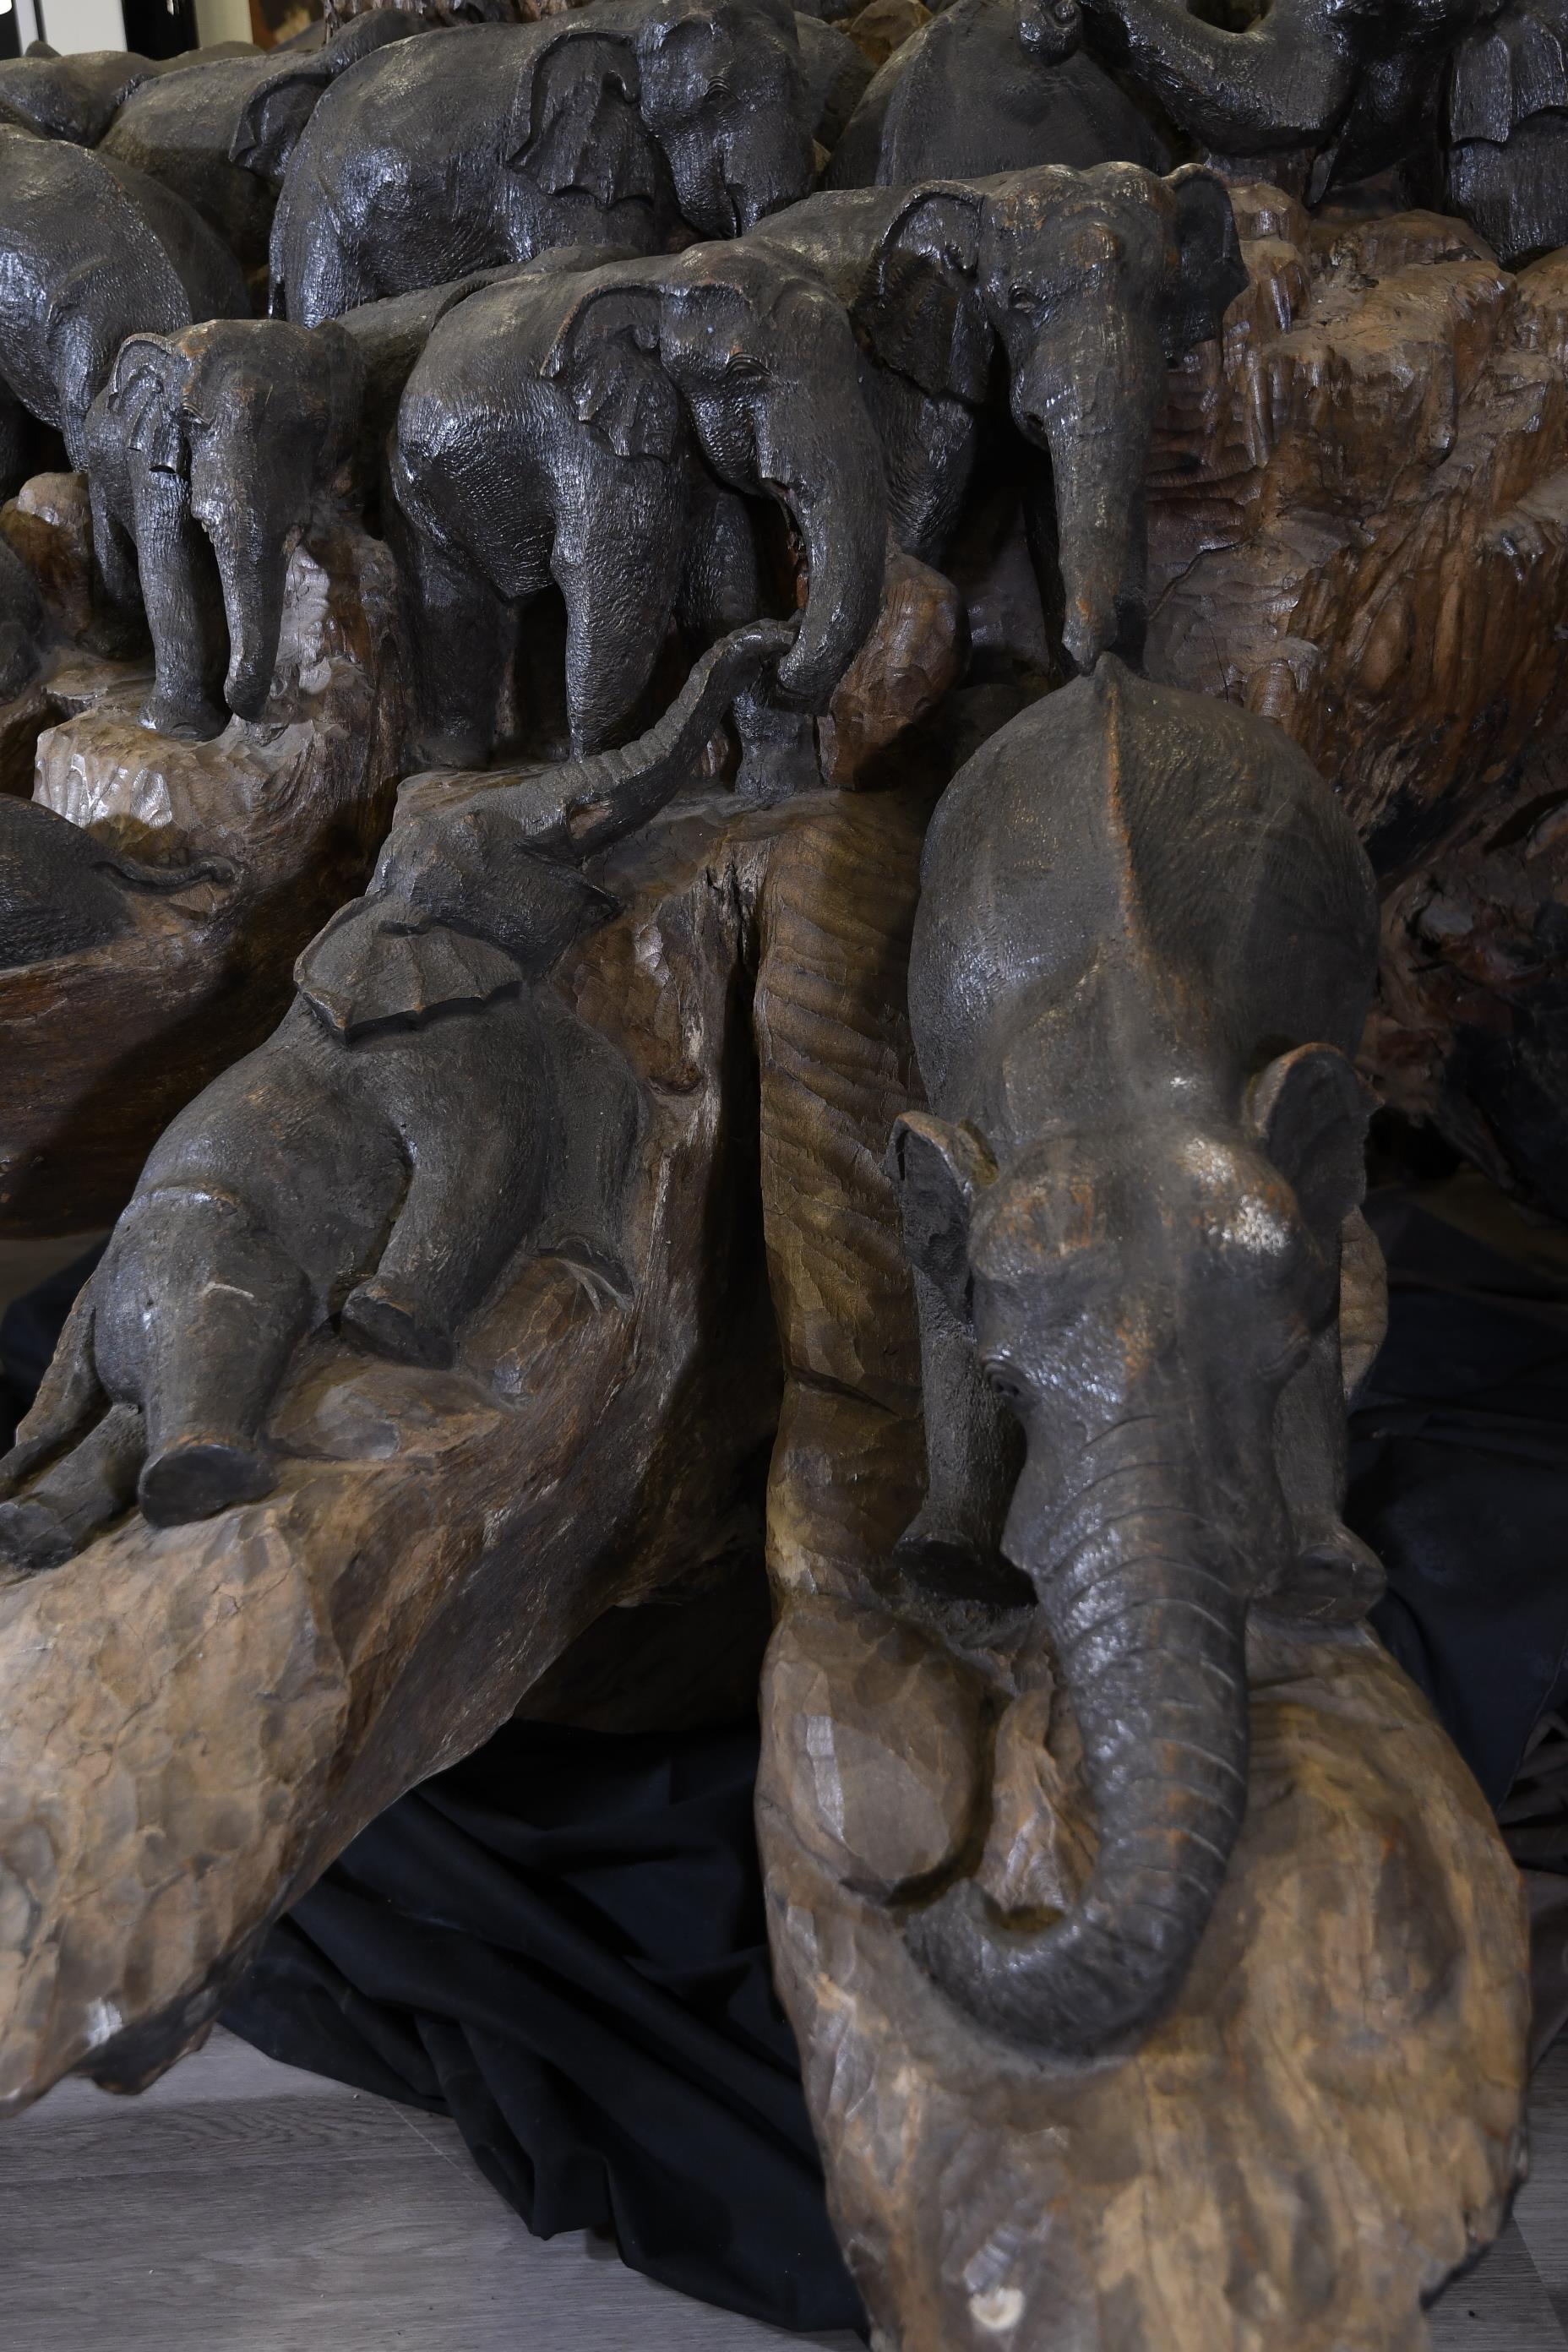 Amazing Unique Art Wood Carving of 47 Elephants Carved from One Piece of Wood - Image 7 of 10